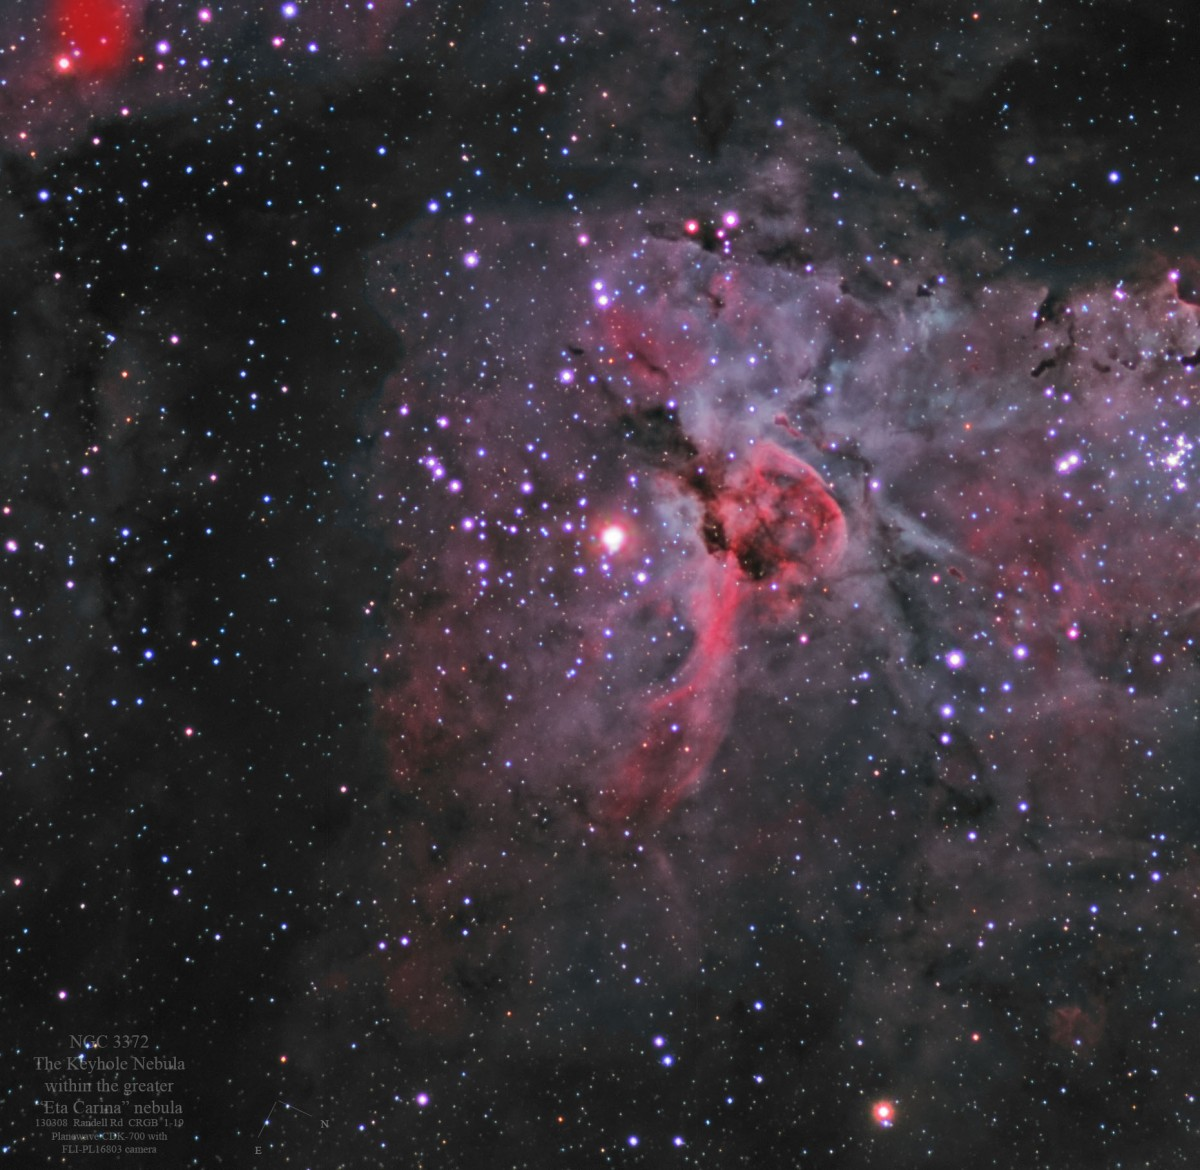 Eta Carina Nebula (NGC 3372) - by Collin Eldridge